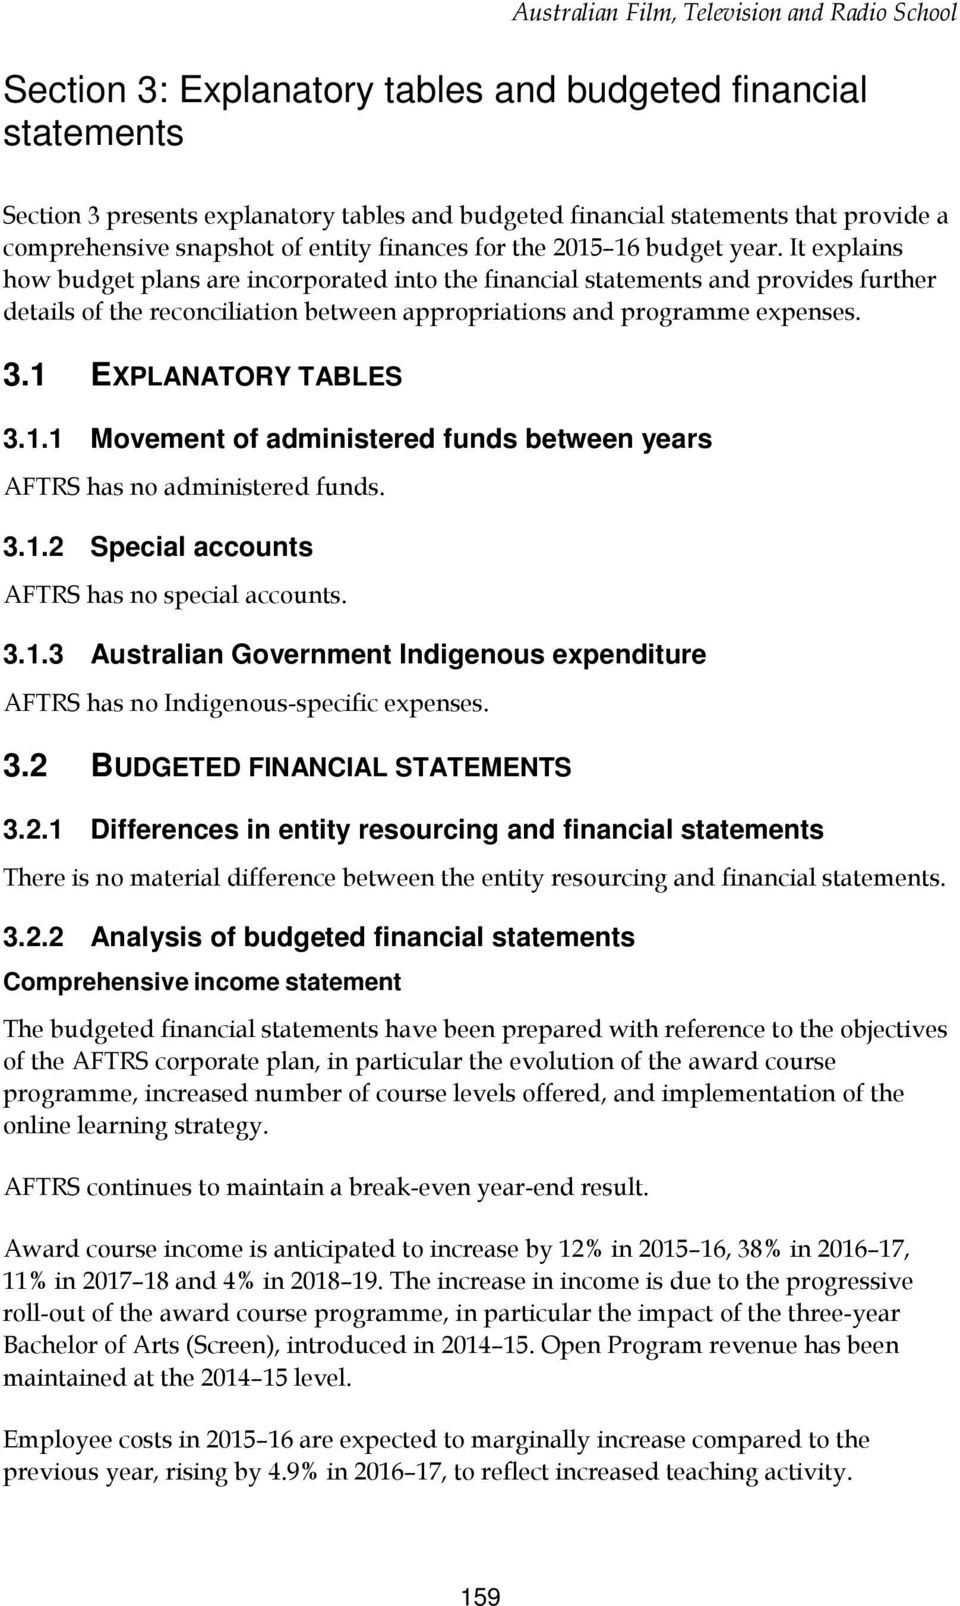 1 EXPLANATORY TABLES 3.1.1 Movement of administered funds between years AFTRS has no administered funds. 3.1.2 Special accounts AFTRS has no special accounts. 3.1.3 Australian Government Indigenous expenditure AFTRS has no Indigenous-specific expenses.